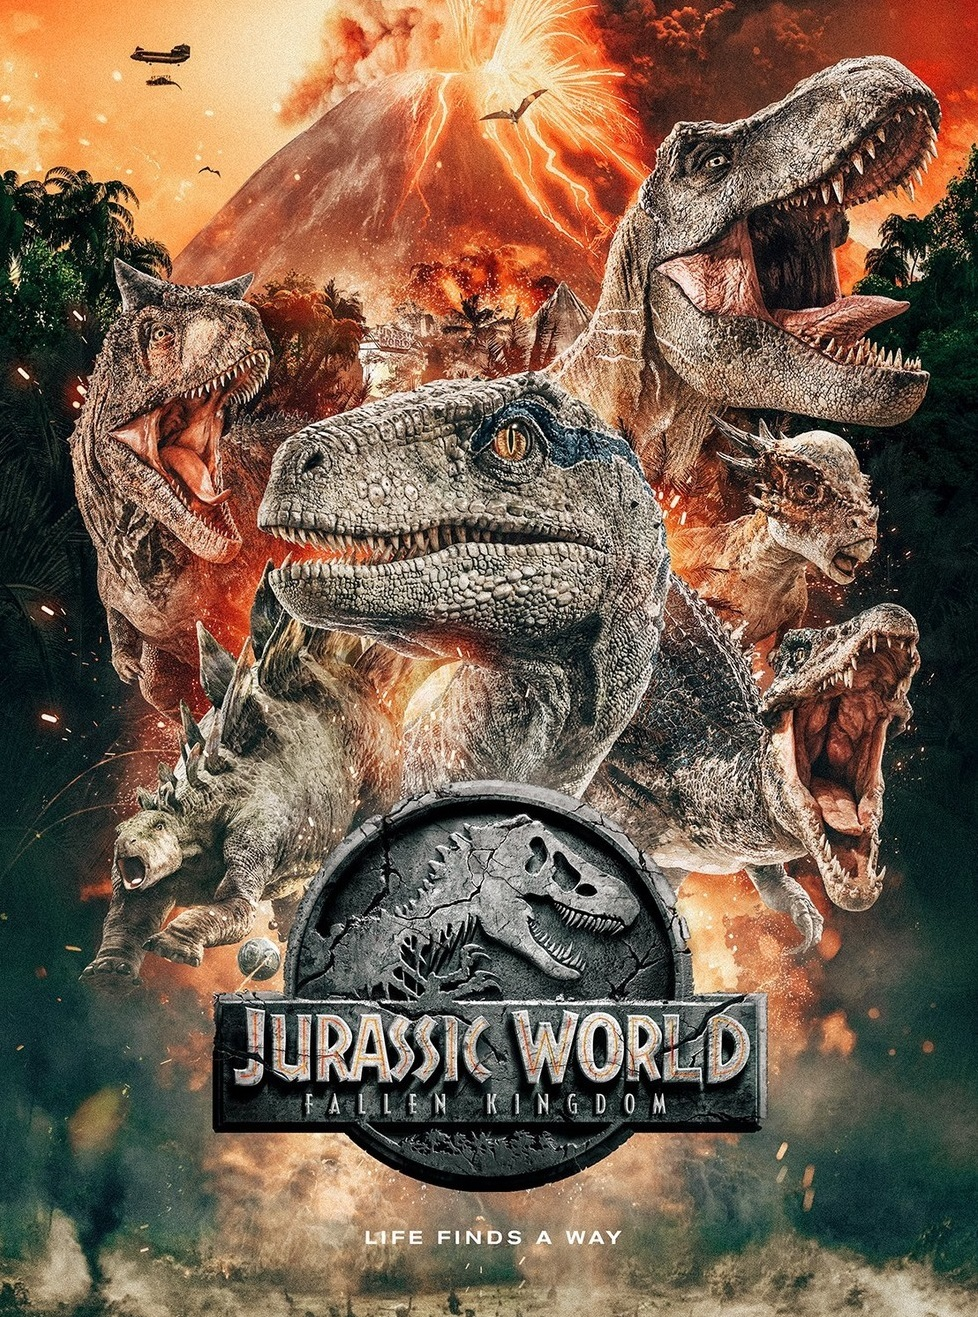 Cinema at The Halls: Jurassic World: Fallen Kingdom (12A)